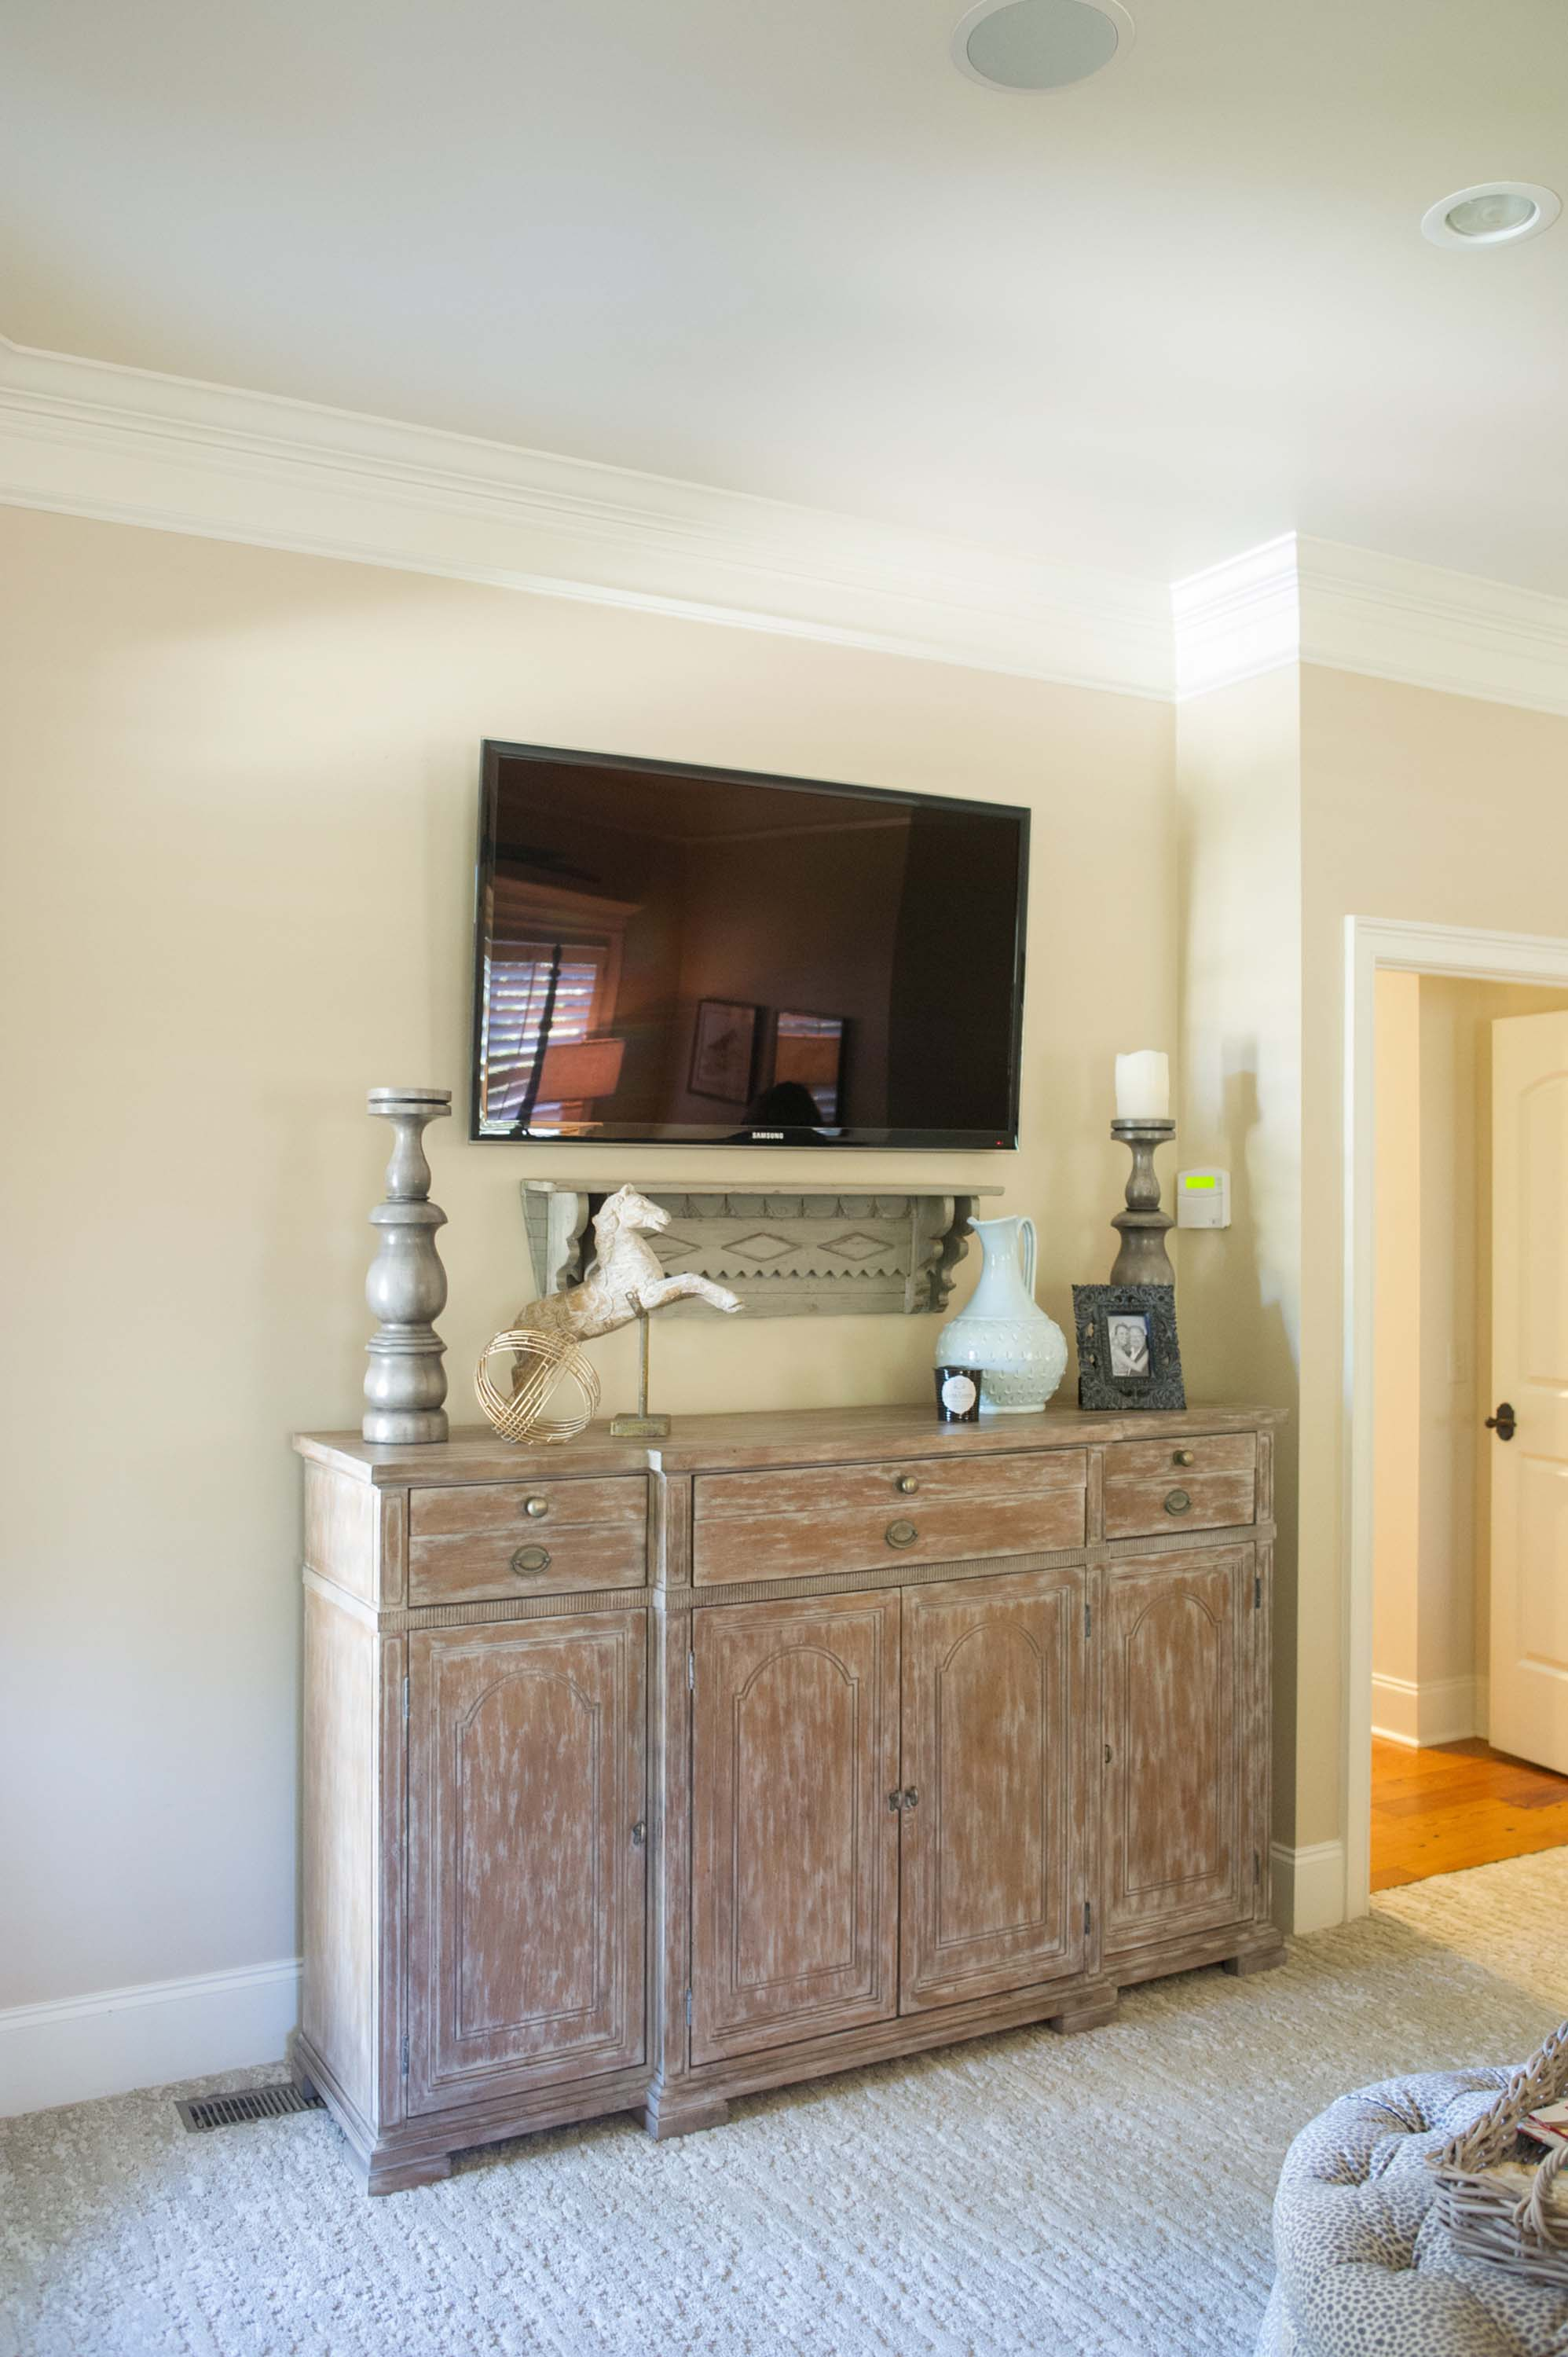 Wooden Chest with TV Hanging Above and Accessories